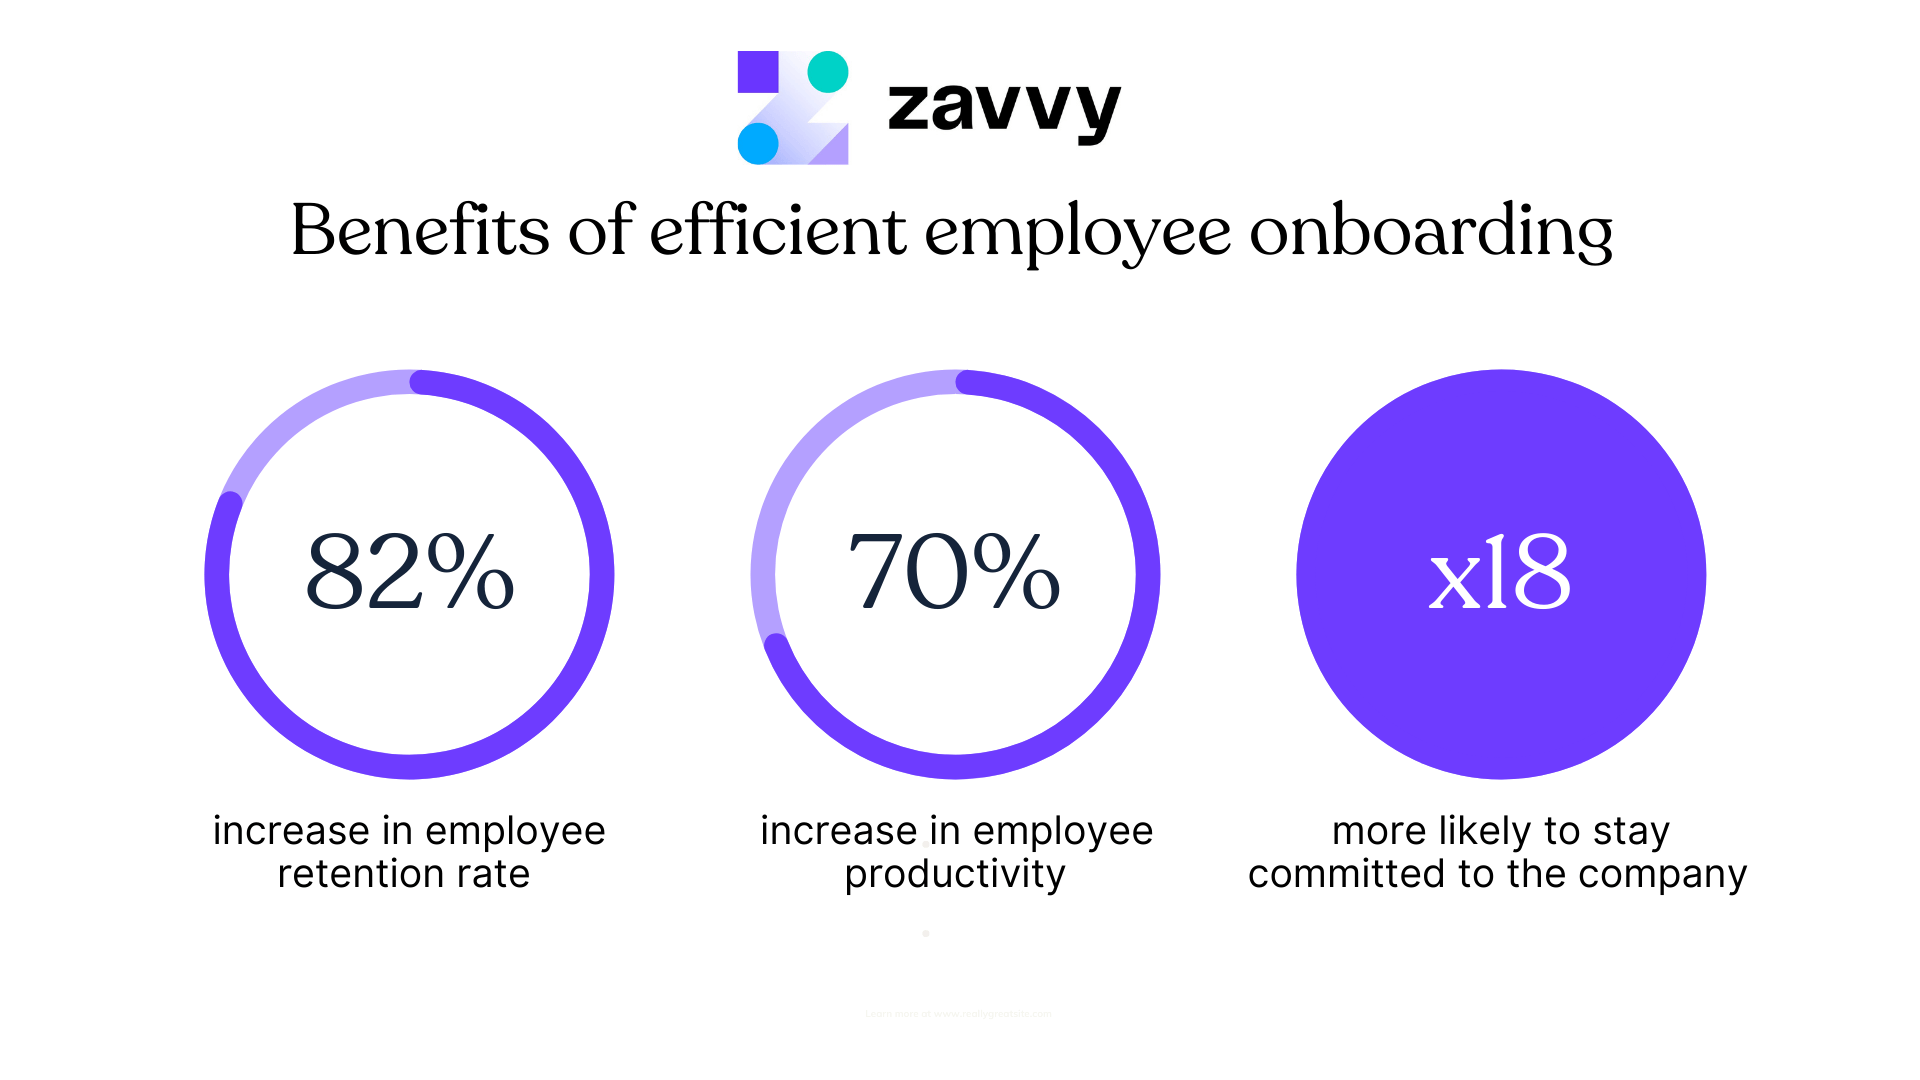 Benefits of efficient employee onboarding. It can increase employee retention rate, productivity, and commitment